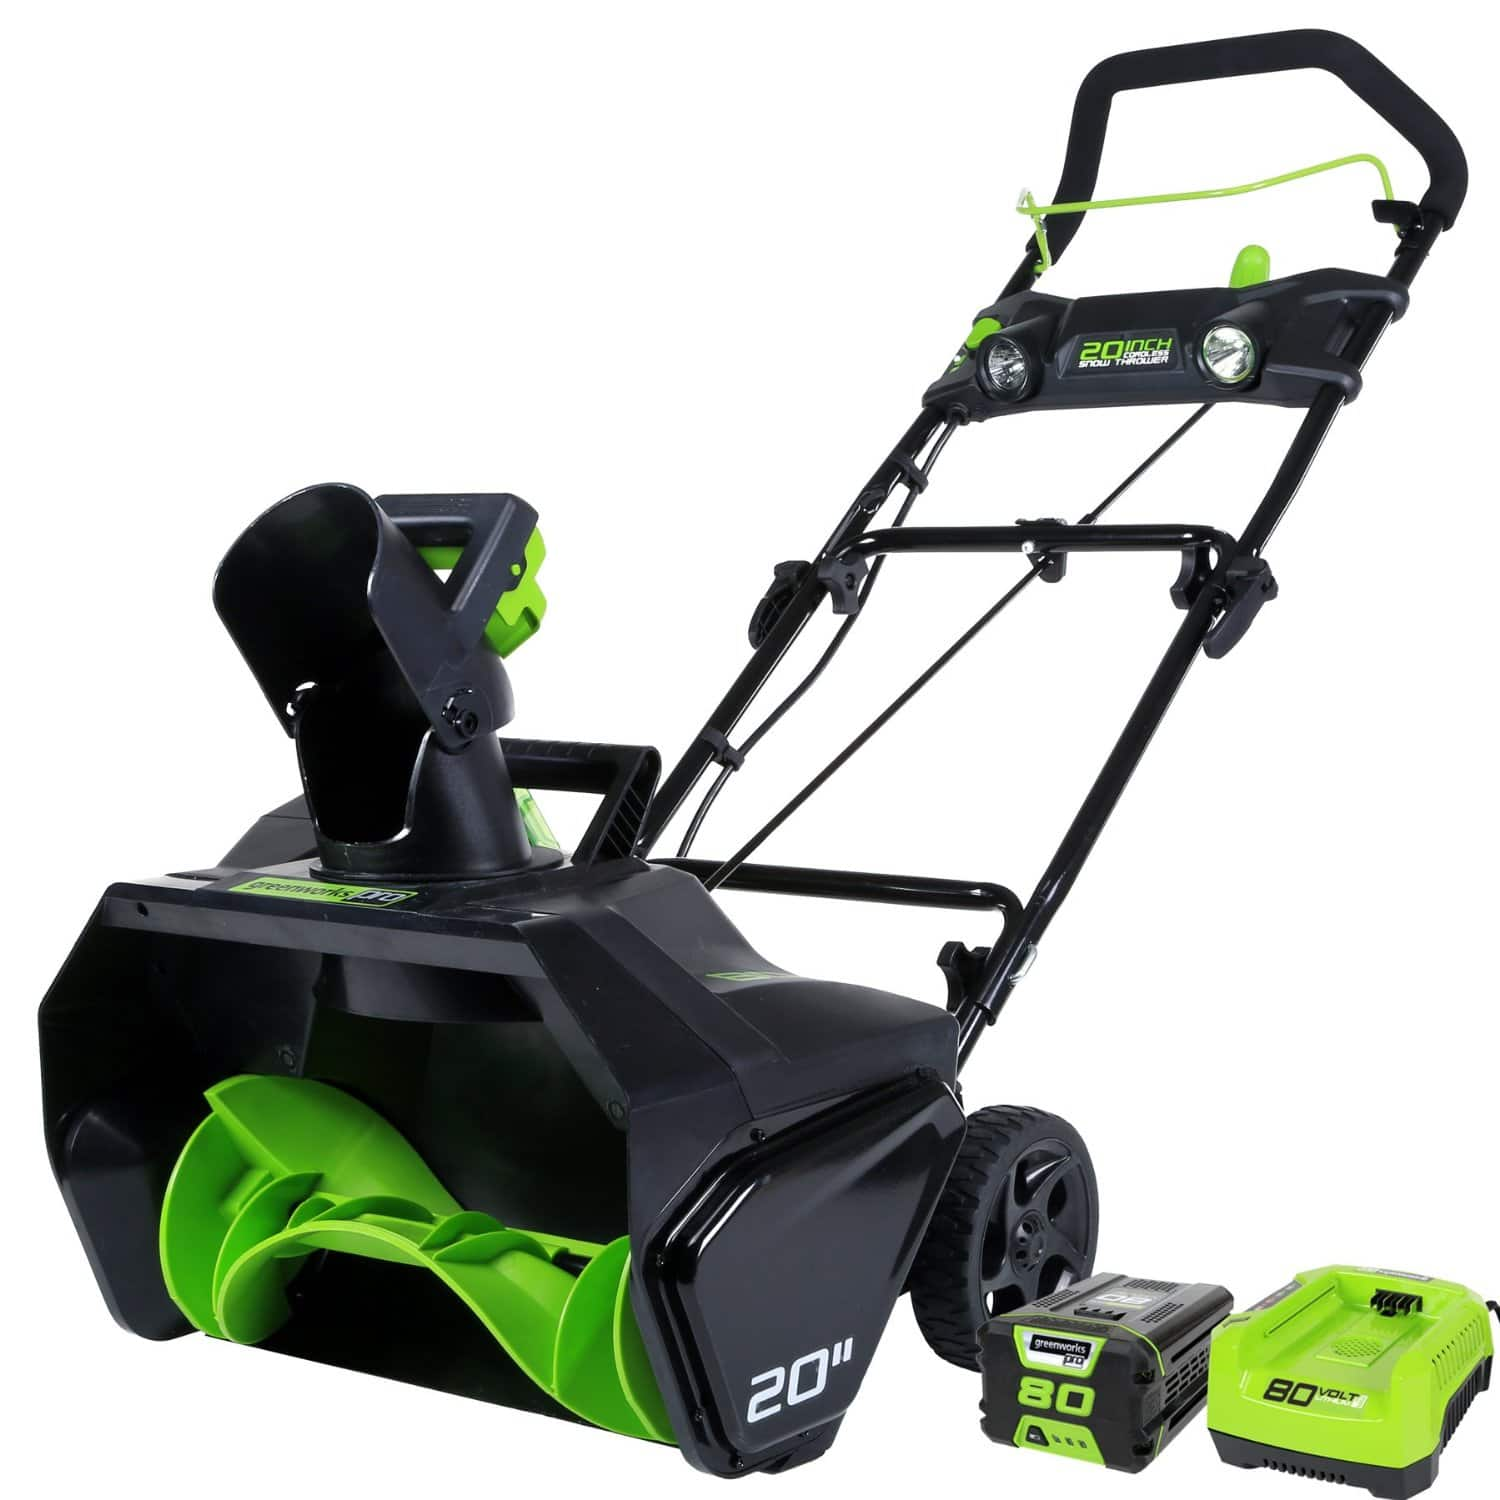 Greenworks Pro 80-Volt 20-in Cordless Electric Snow Blower - $299 @ Lowe's